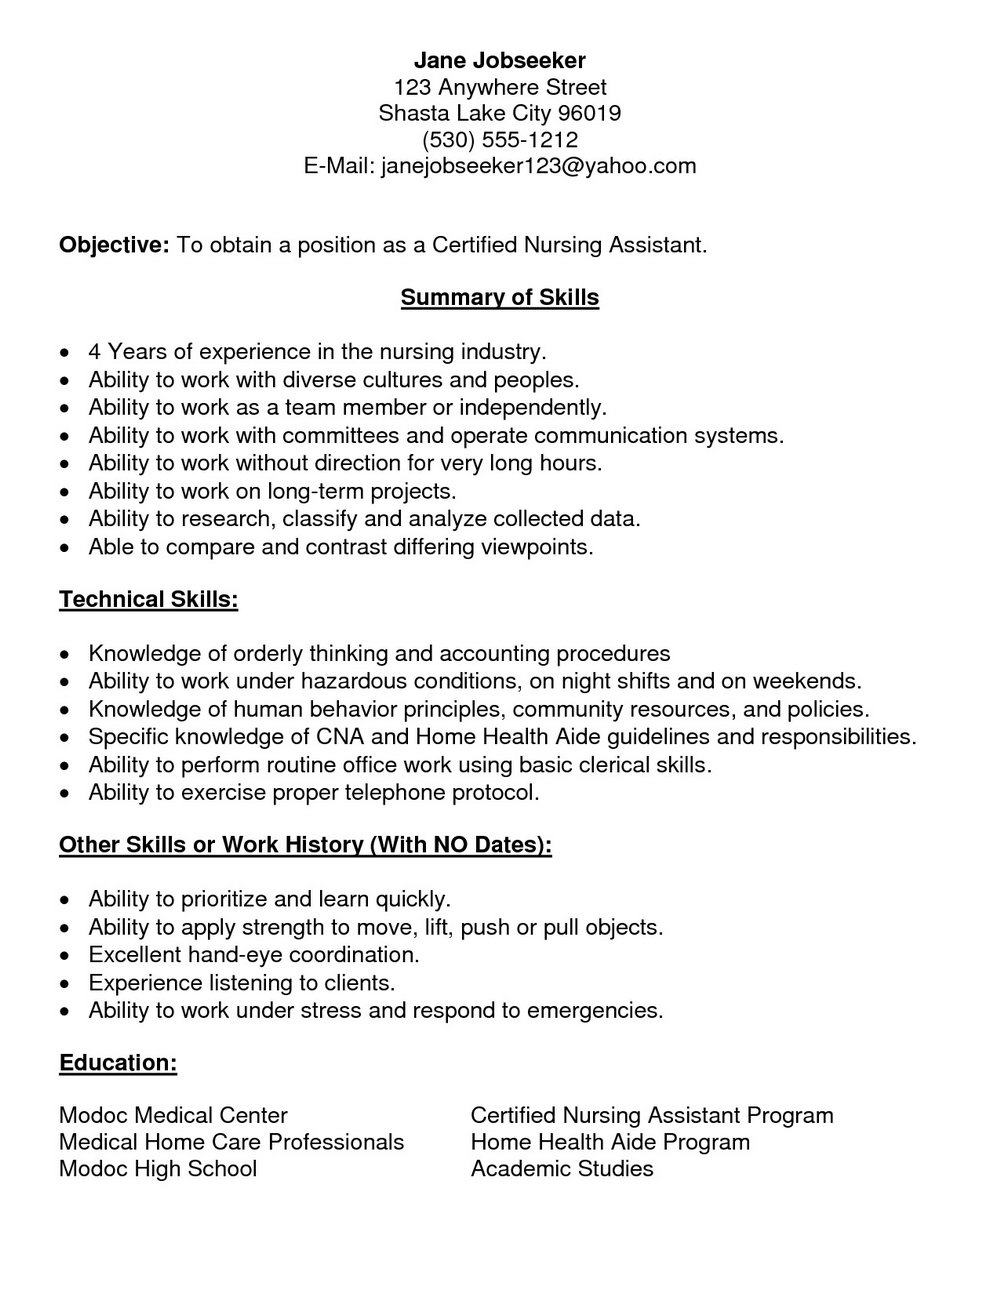 Resume For Nursing Assistant With No Experience